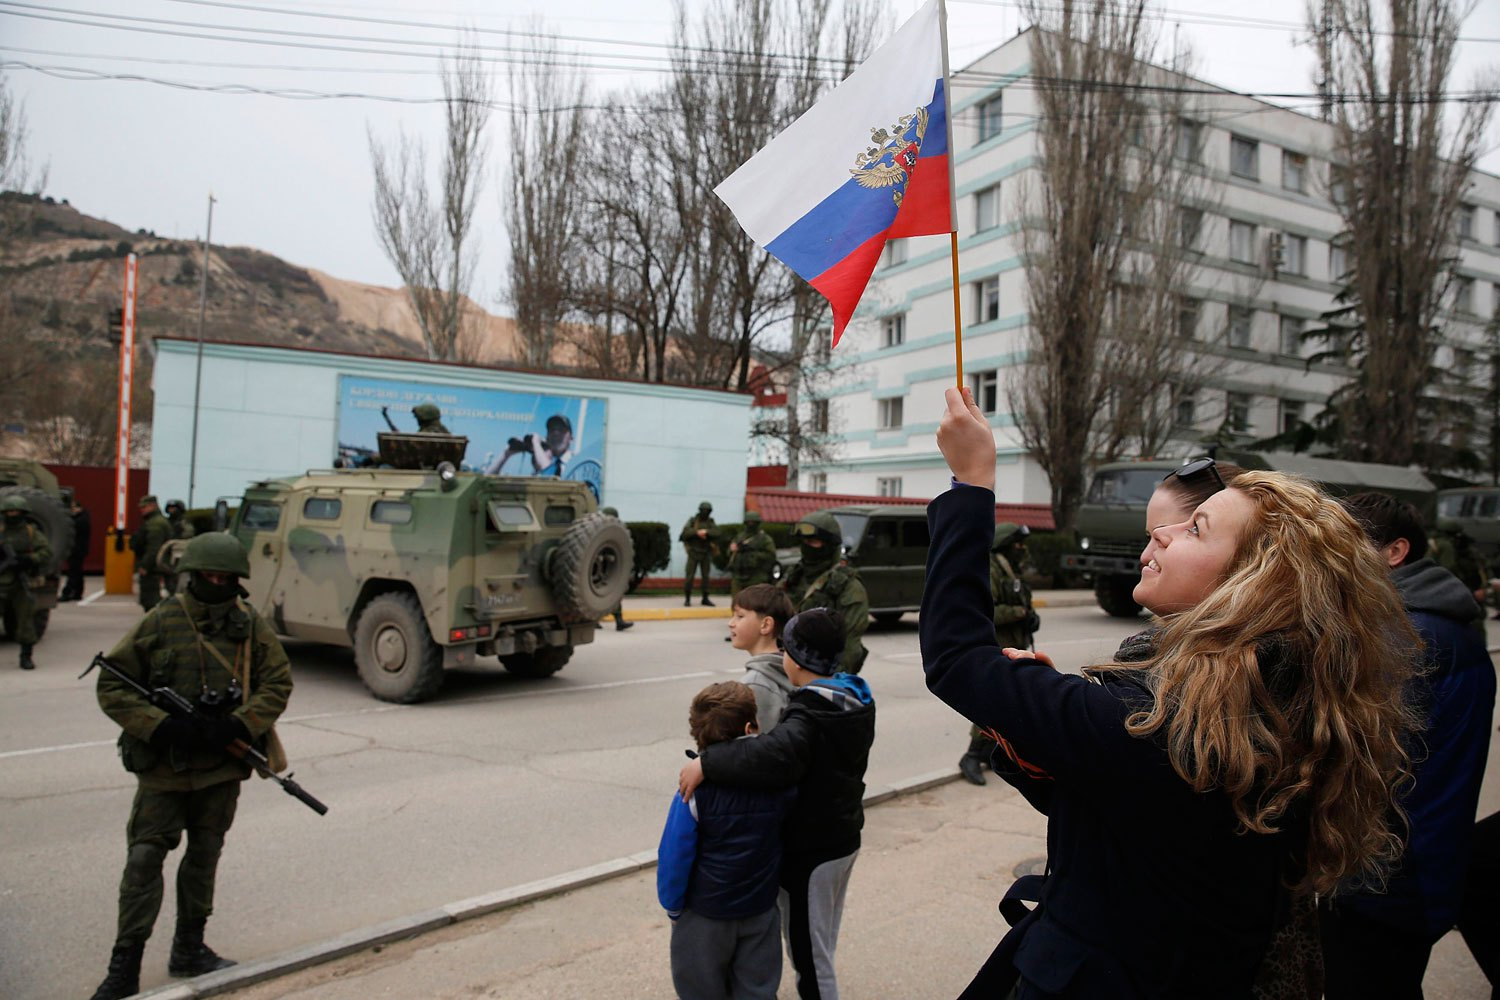 A woman waves a Russian flag as armed servicemen wait near Russian army vehicles outside a Ukrainian border guard post in the Crimean town of Balaclava, March 1, 2014.